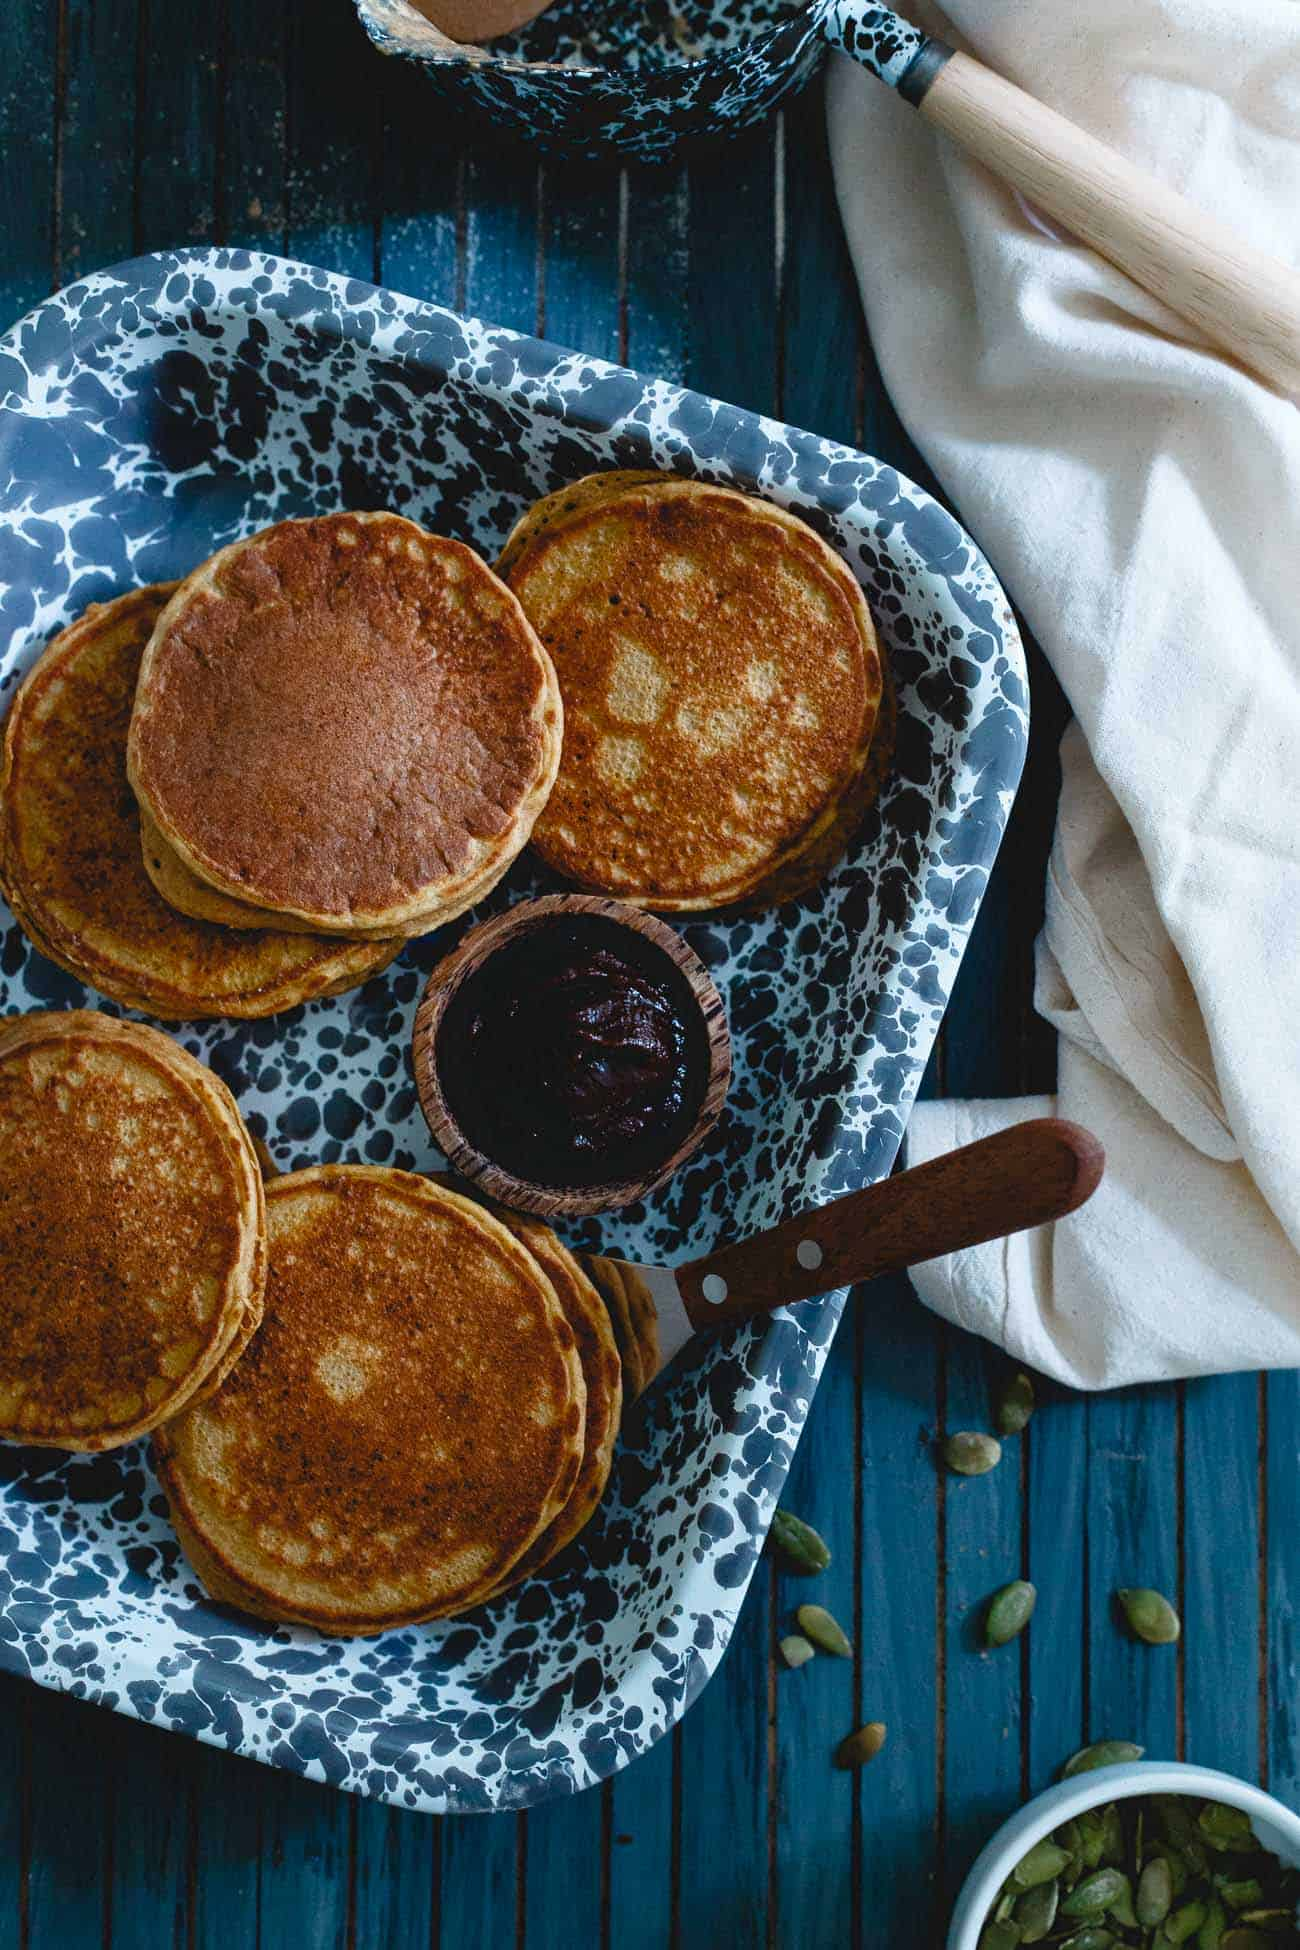 These pumpkin protein pancakes are a simple, fall recipe for pumpkin pancakes packed with protein to help keep you full longer. A healthy start to your day!